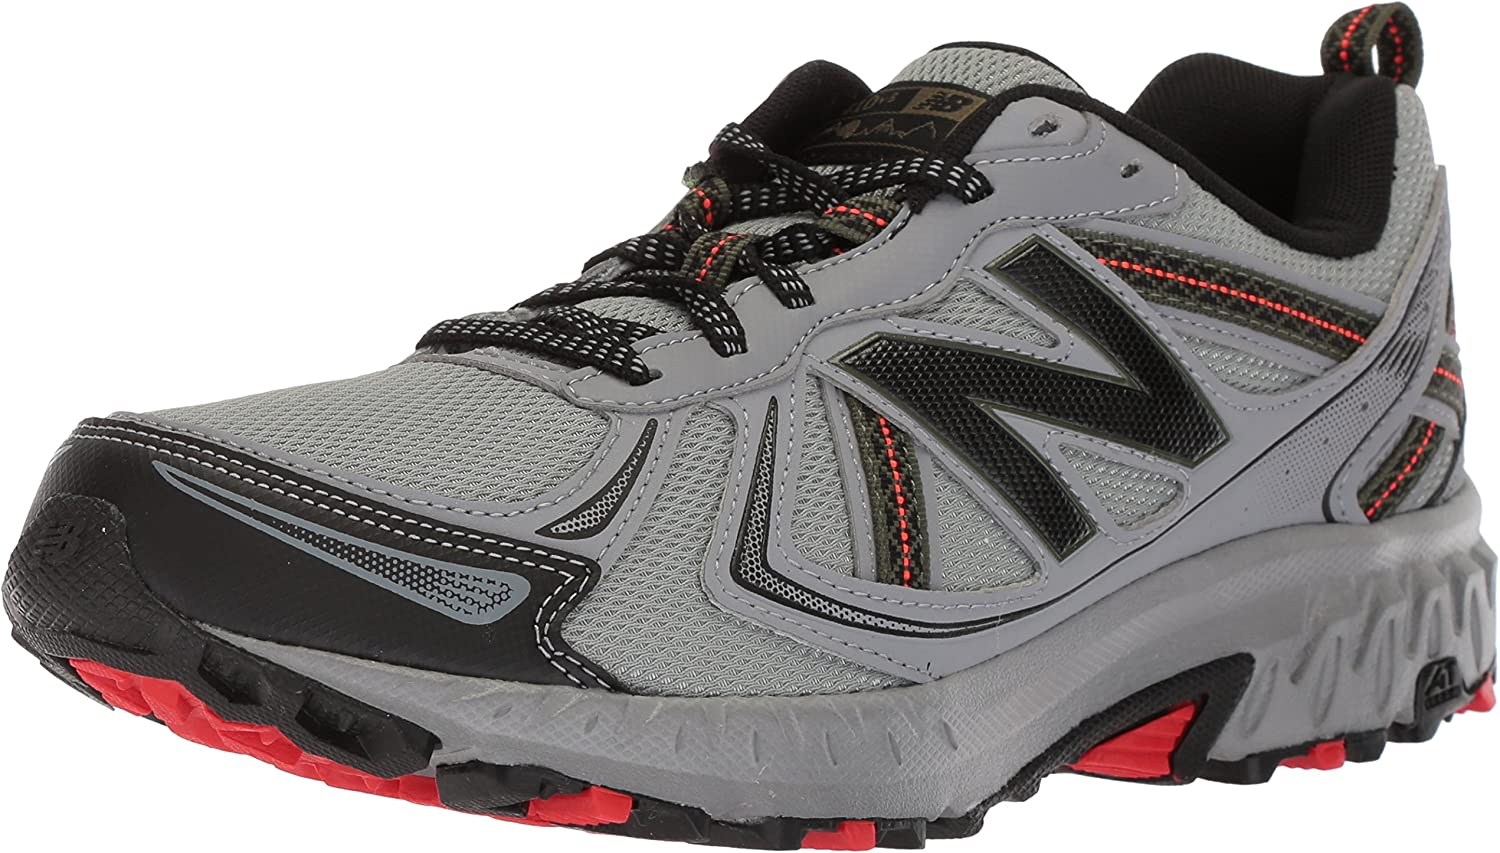 New Balance Men's MT410v5 Cushioning Trail Running schuhe, Steel, 10 D US